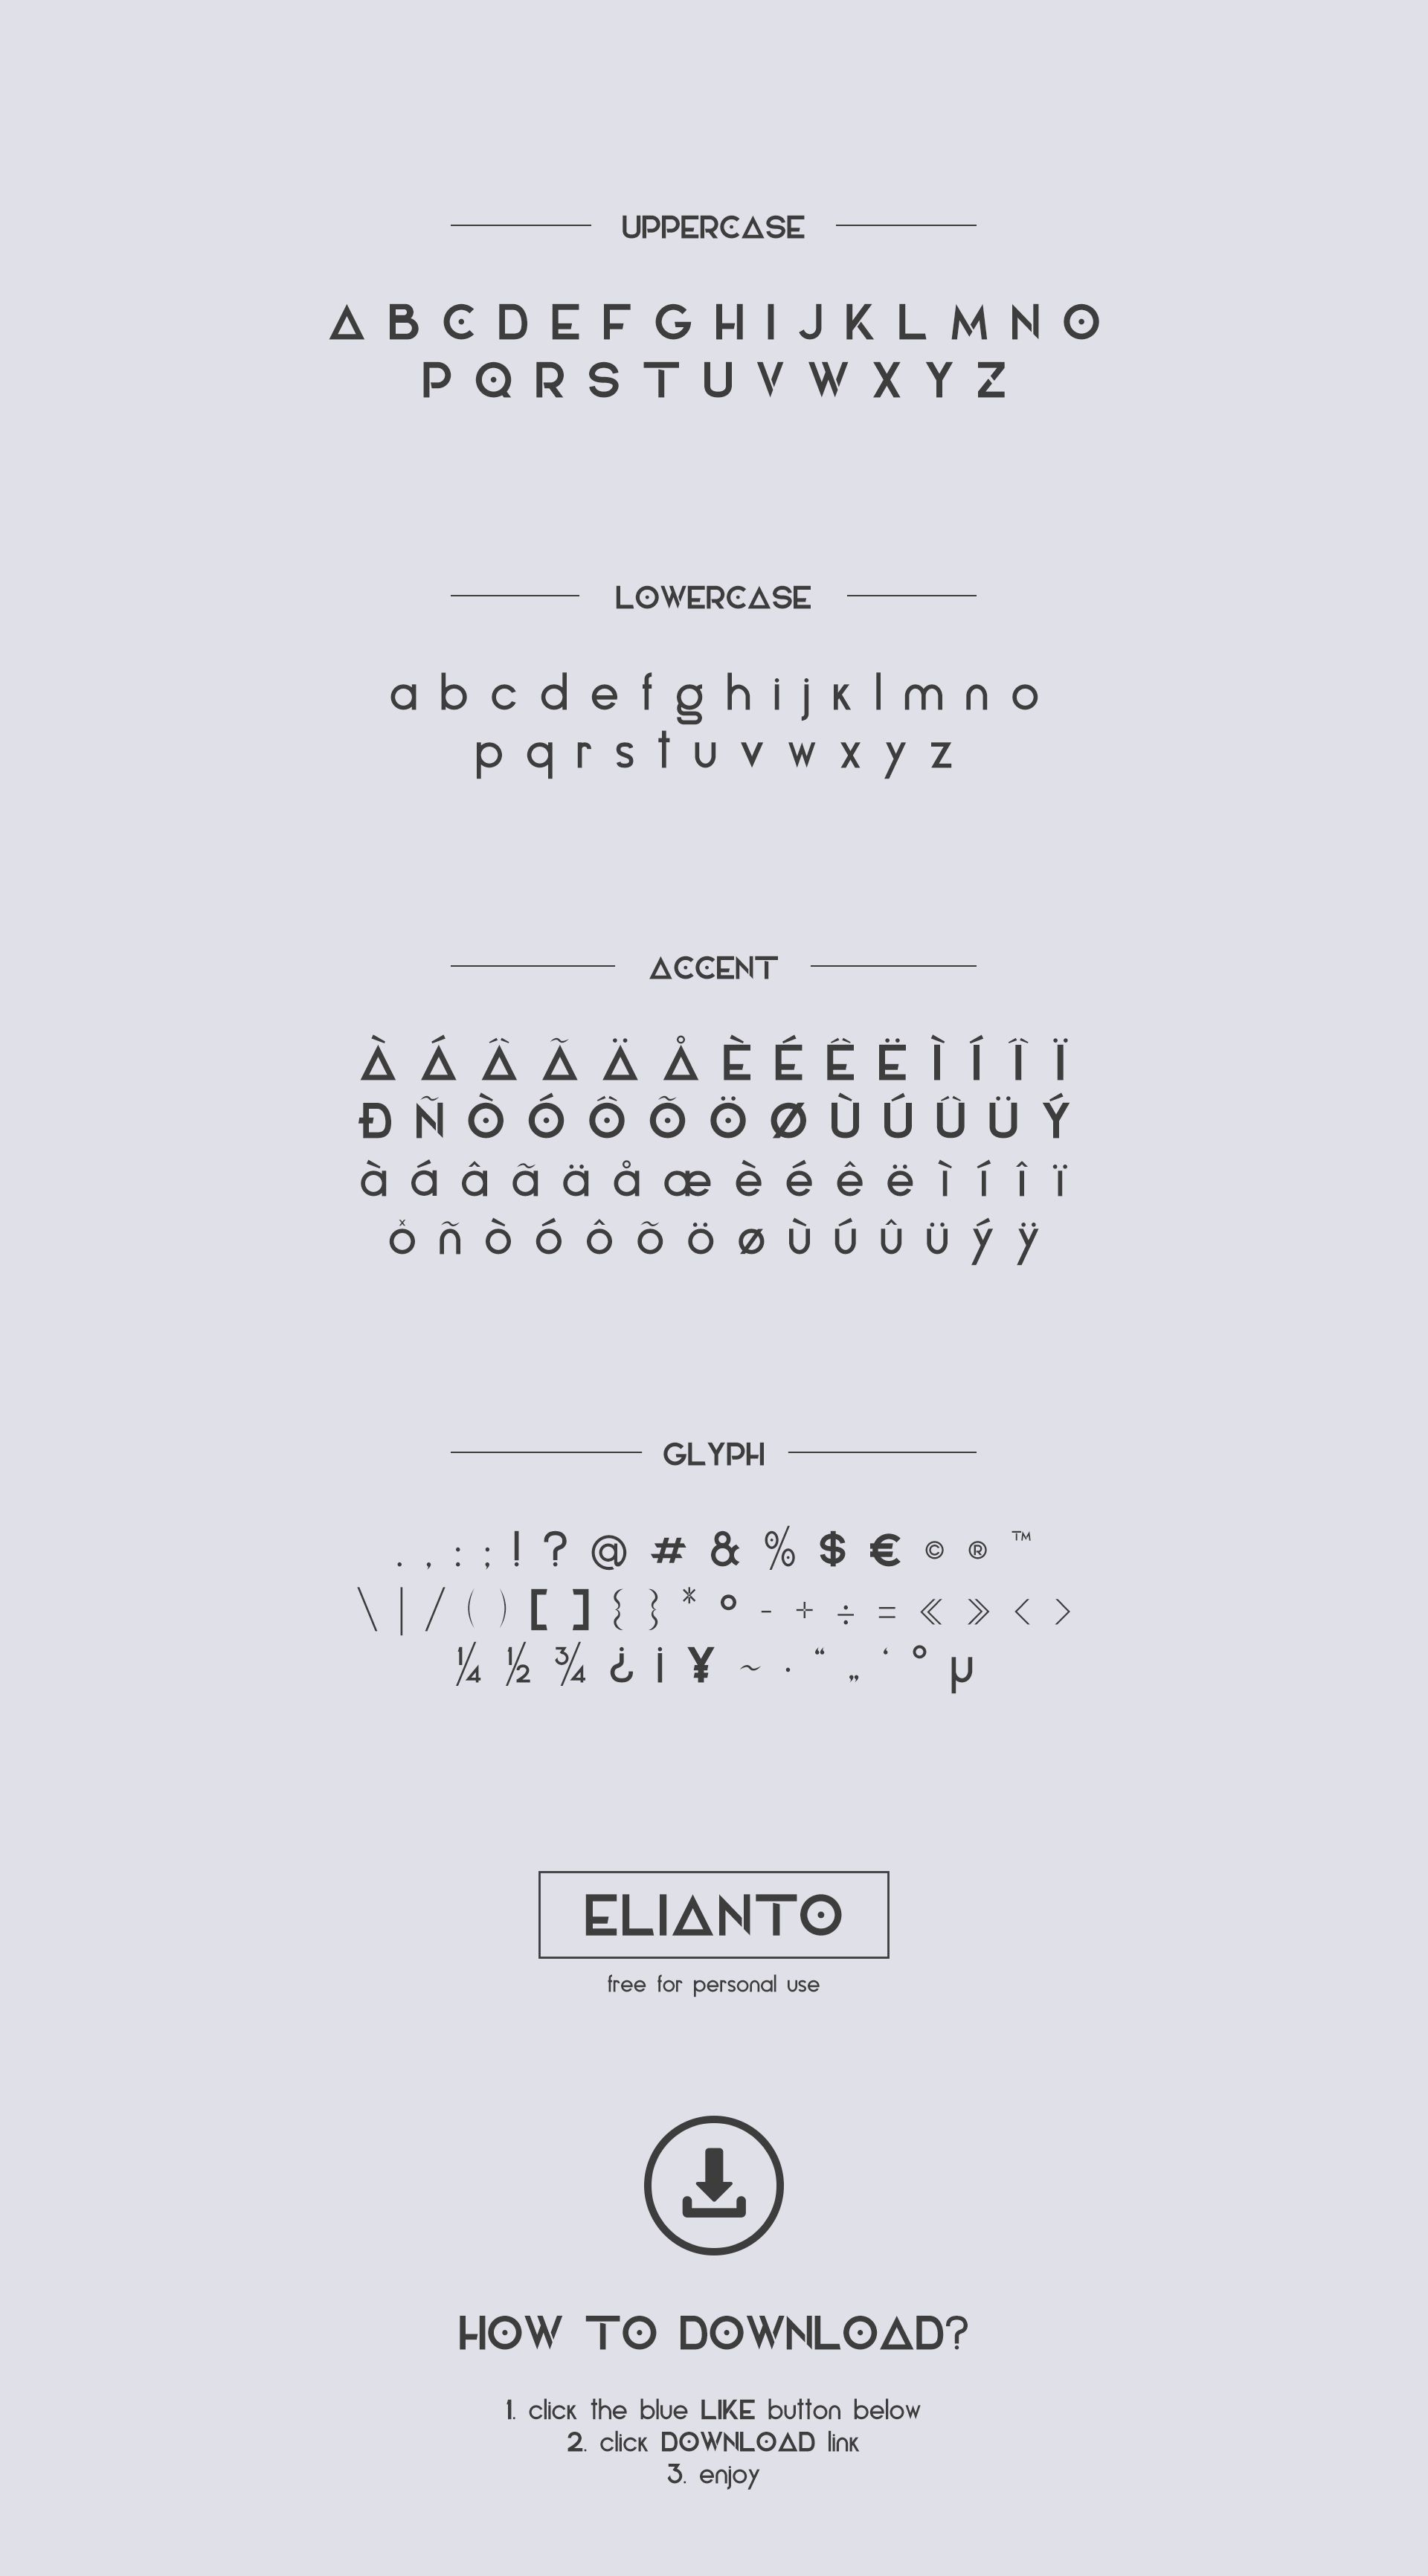 Design of Elianto, free sans serif font for personal use.Hope you like it!